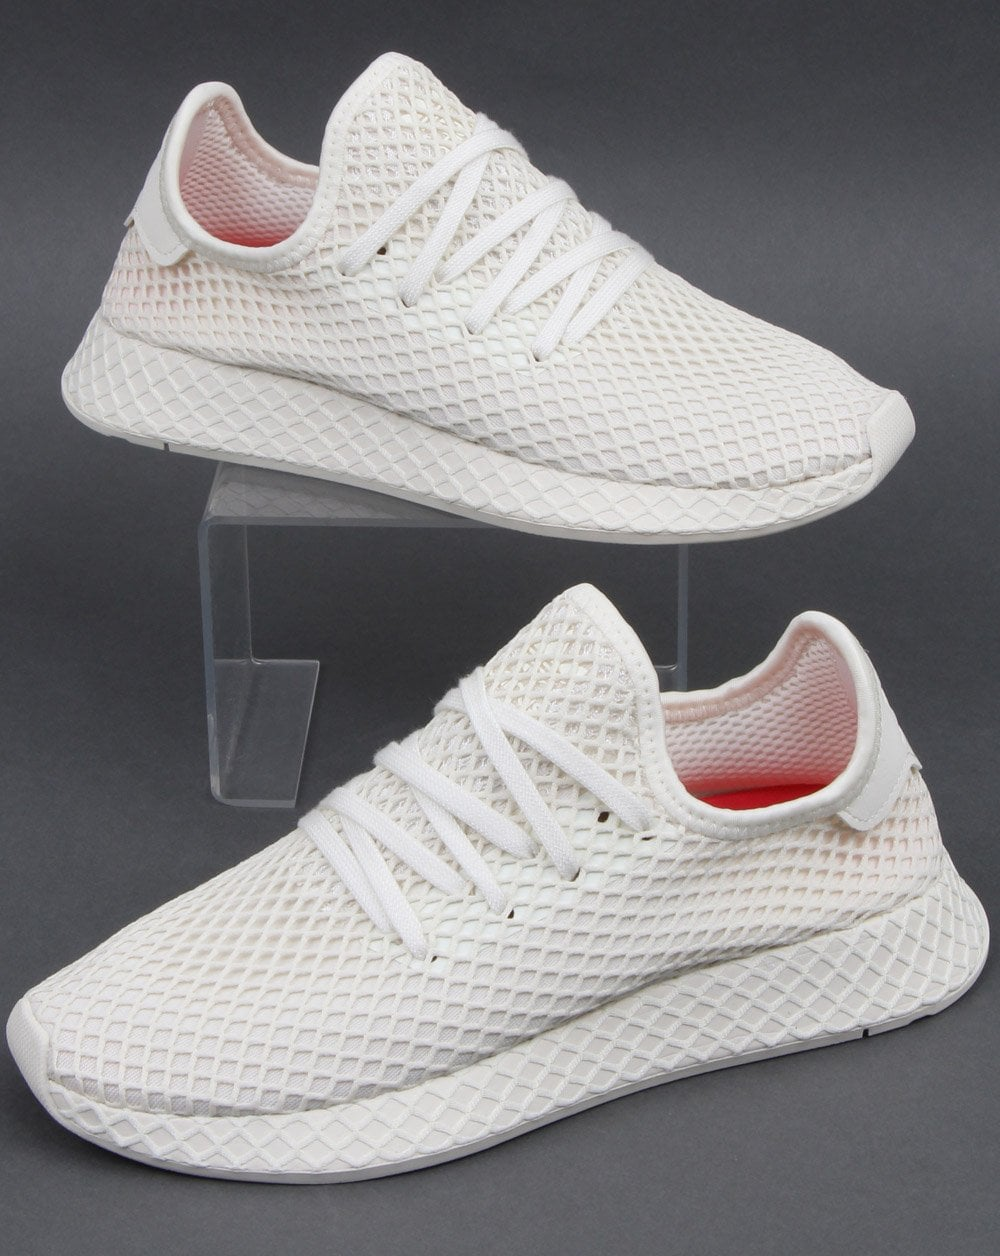 2f031ae9738cc adidas Trainers Adidas Deerupt Comfort Trainers White